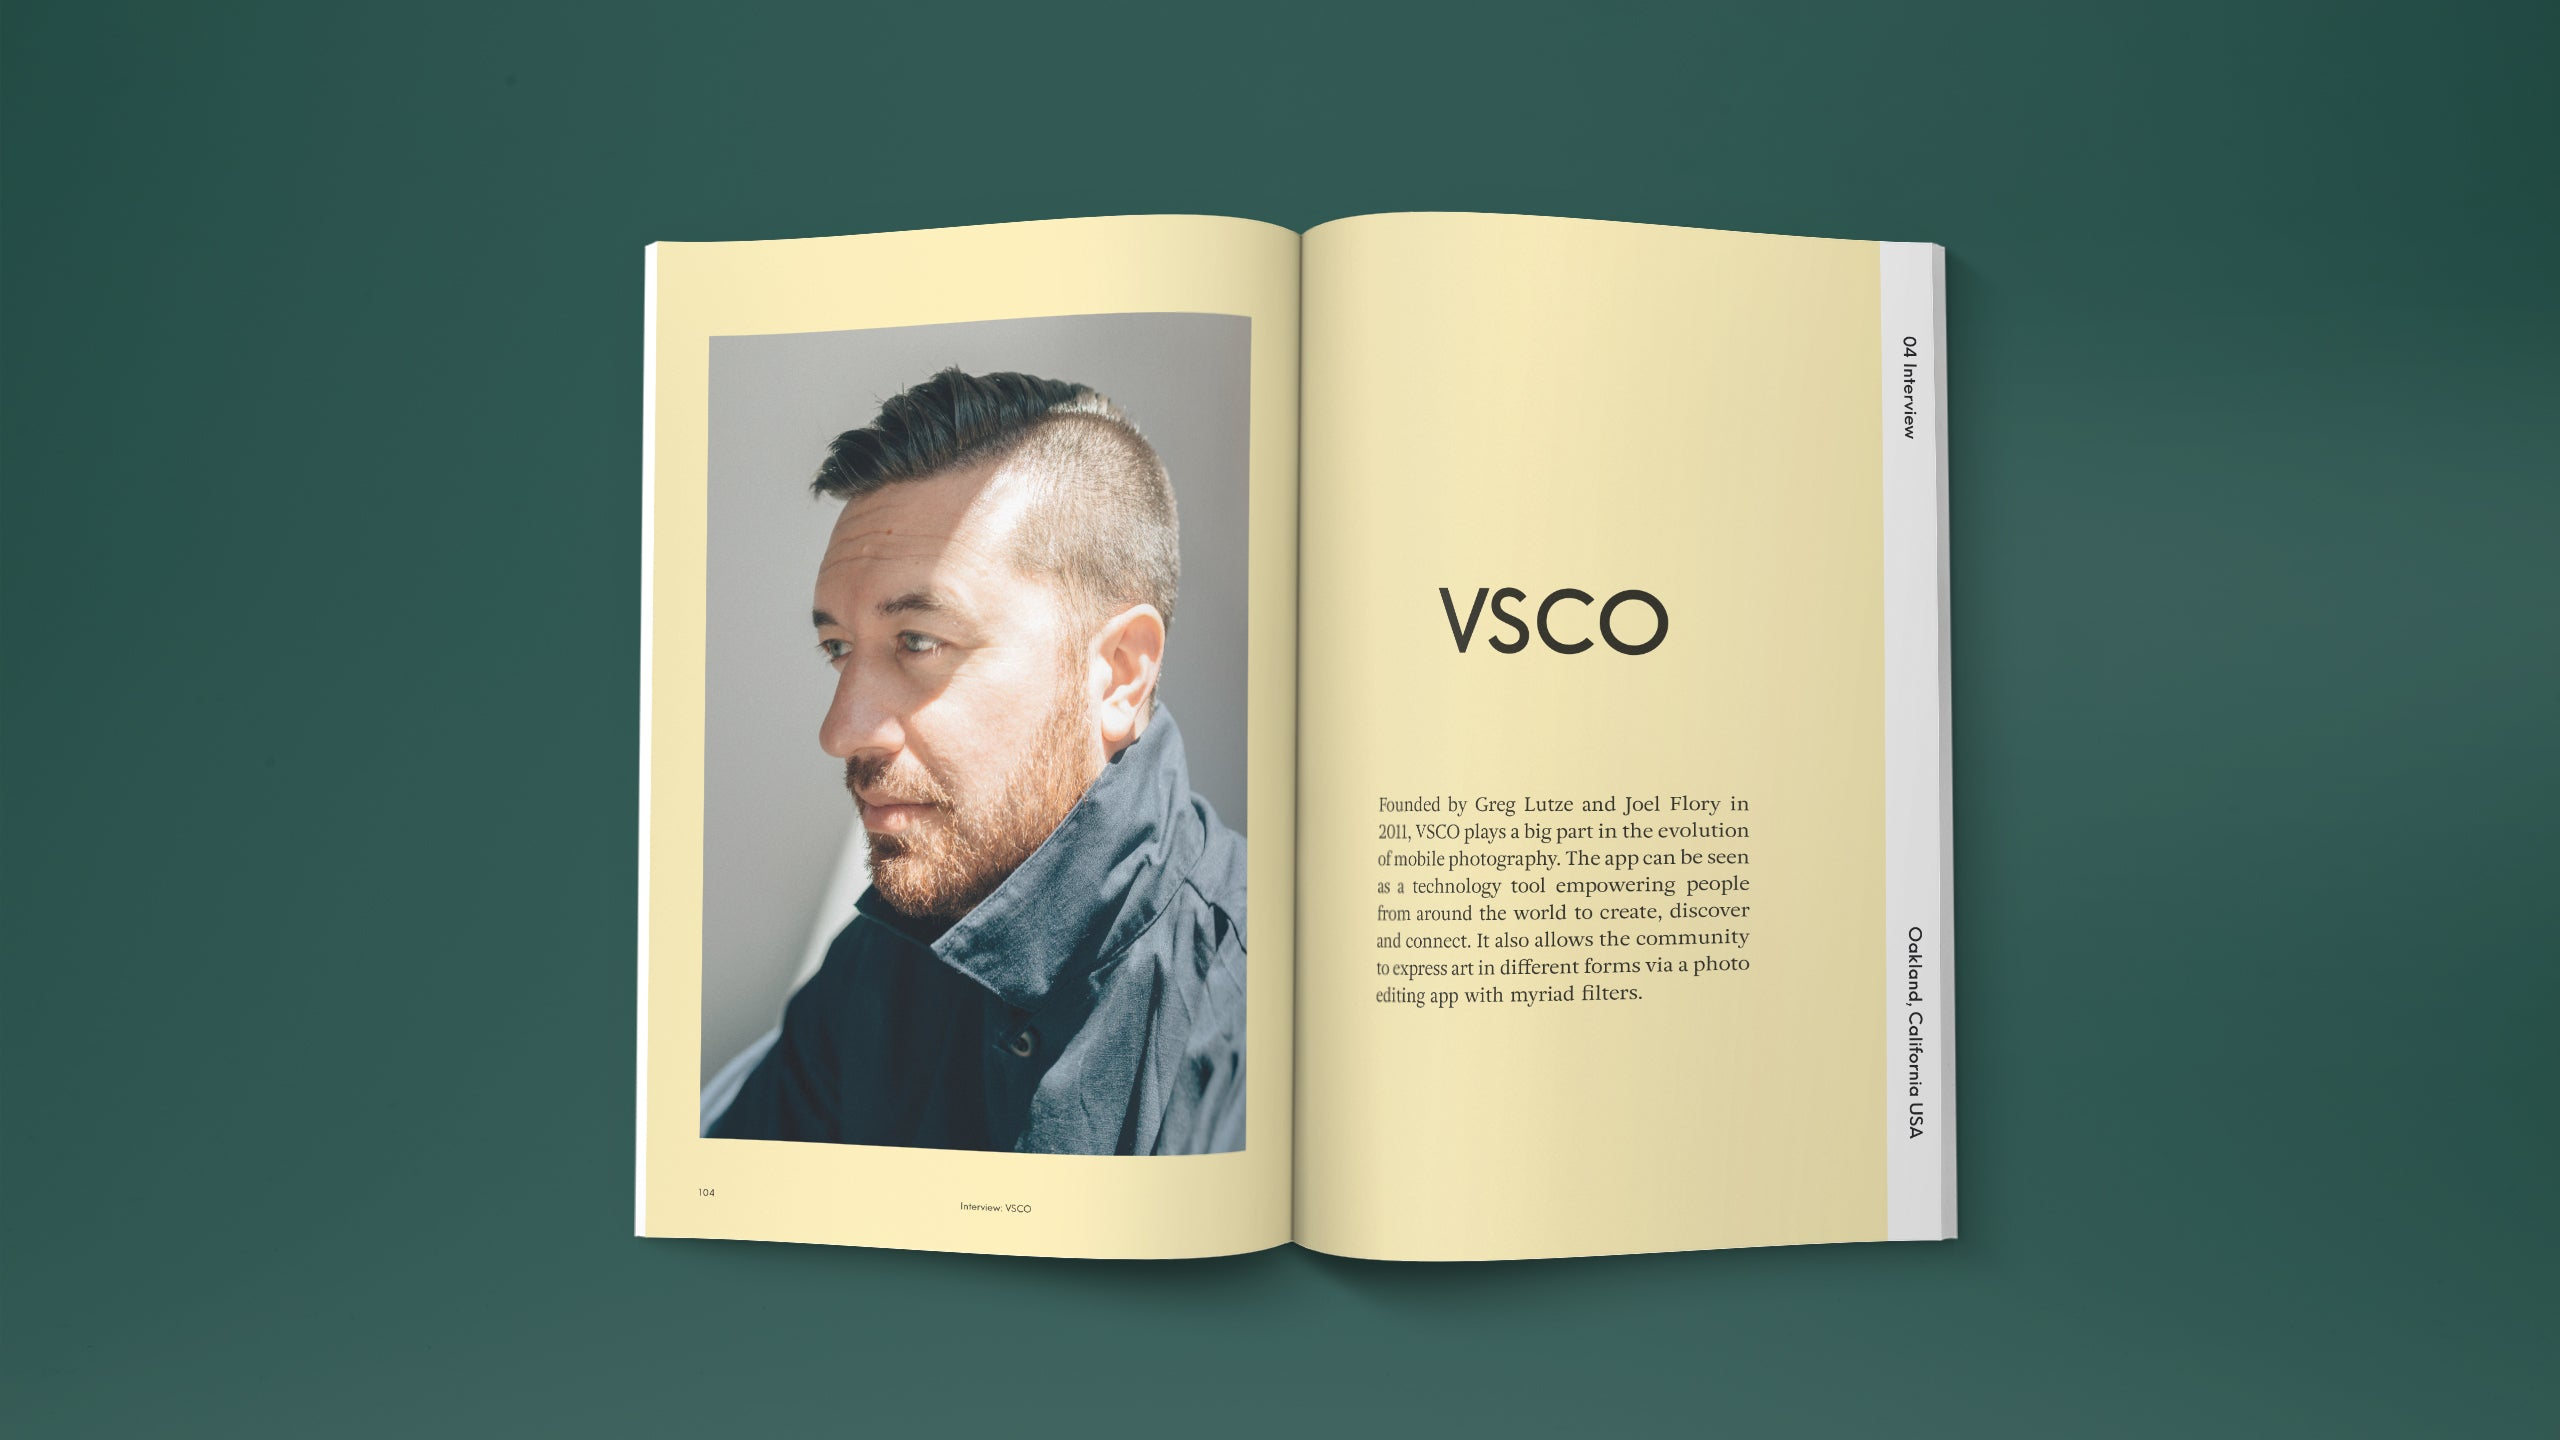 travel magazine and home lifestyle. story about minimal interior design. interview with VSCO founder greg lutze mobile photography. VSCO office in San Francisco. photography by Steven Turville